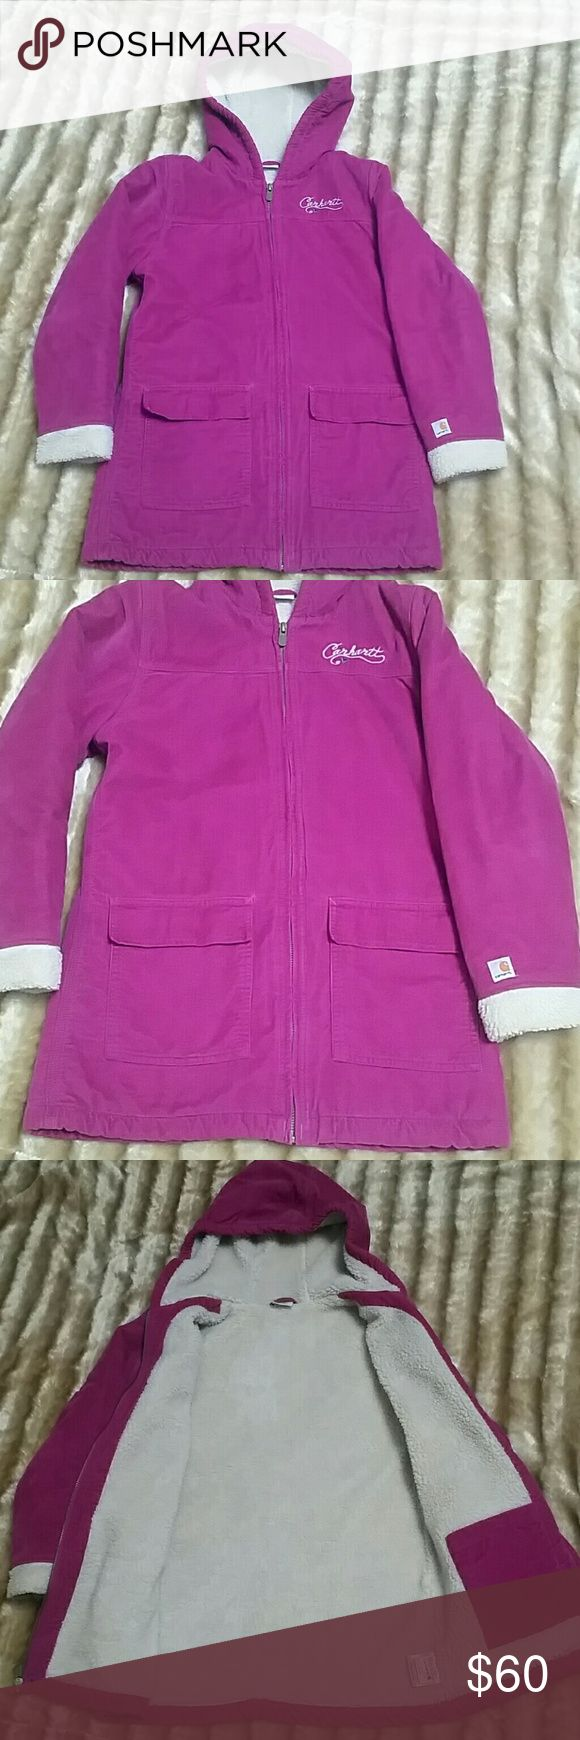 Beautiful Carhartt Coat Kids Carhartt Coat.  Size Large 12. Like new. Perfect condition! Not only is this jacket so warm, but it's so beautiful and so soft!  The color is magenta. Carhartt Jackets & Coats